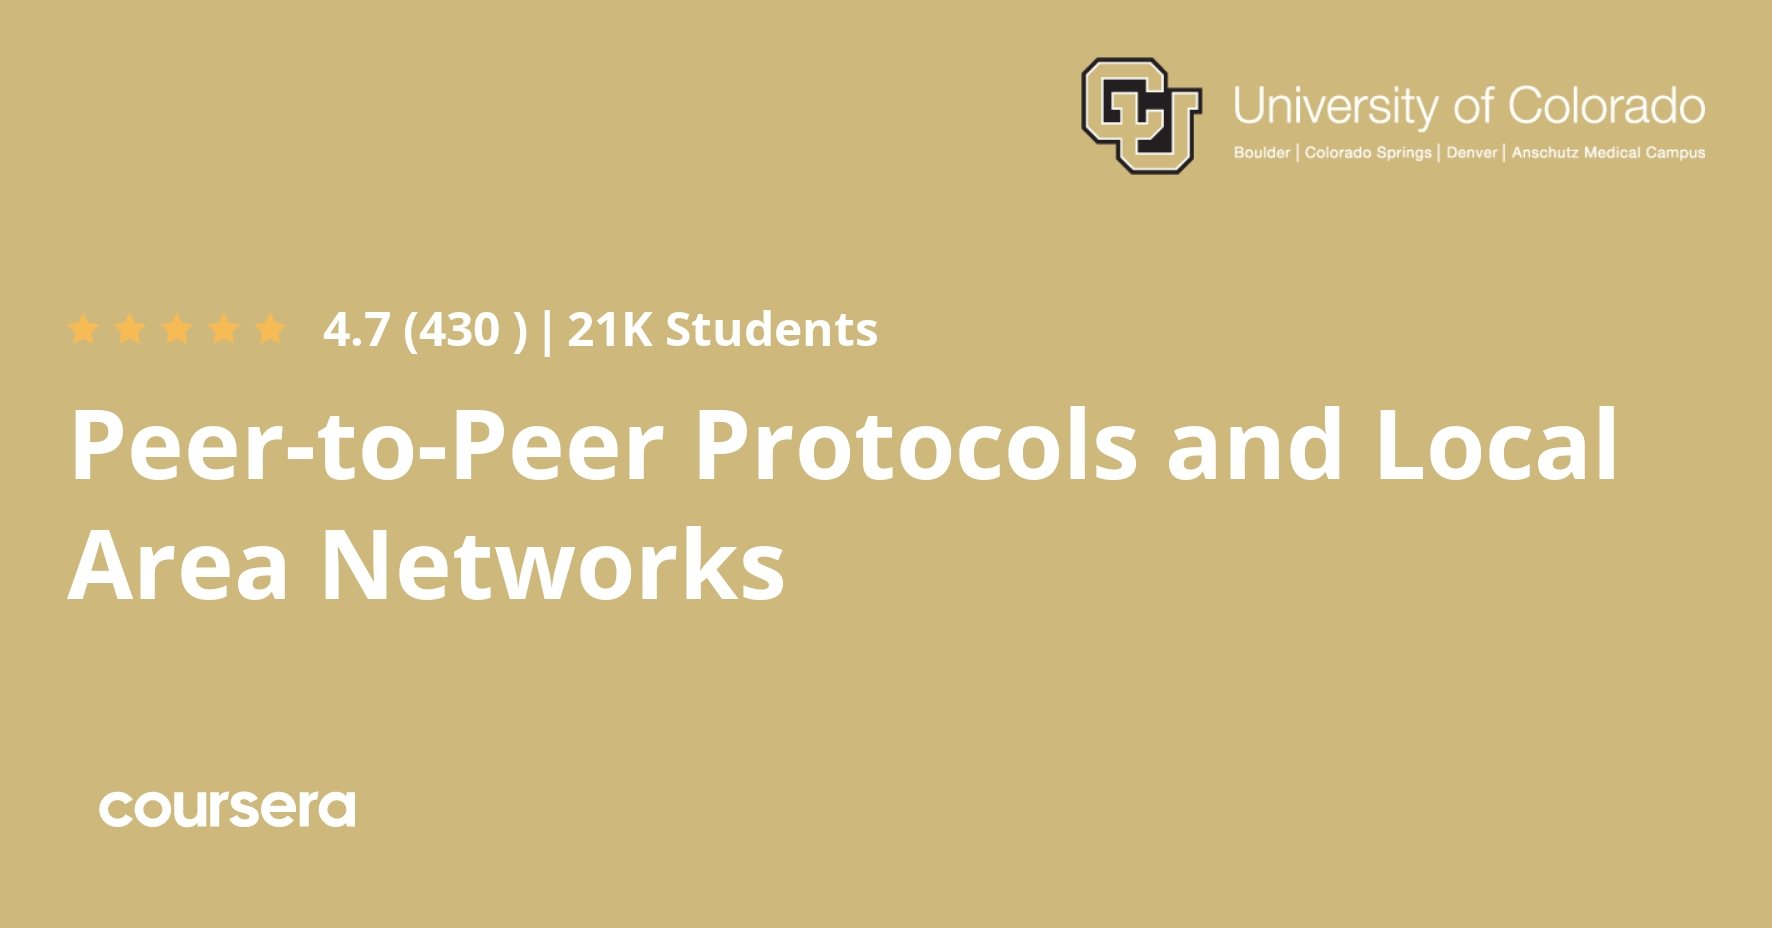 Peer-to-Peer Protocols and Local Area Networks (Coursera)